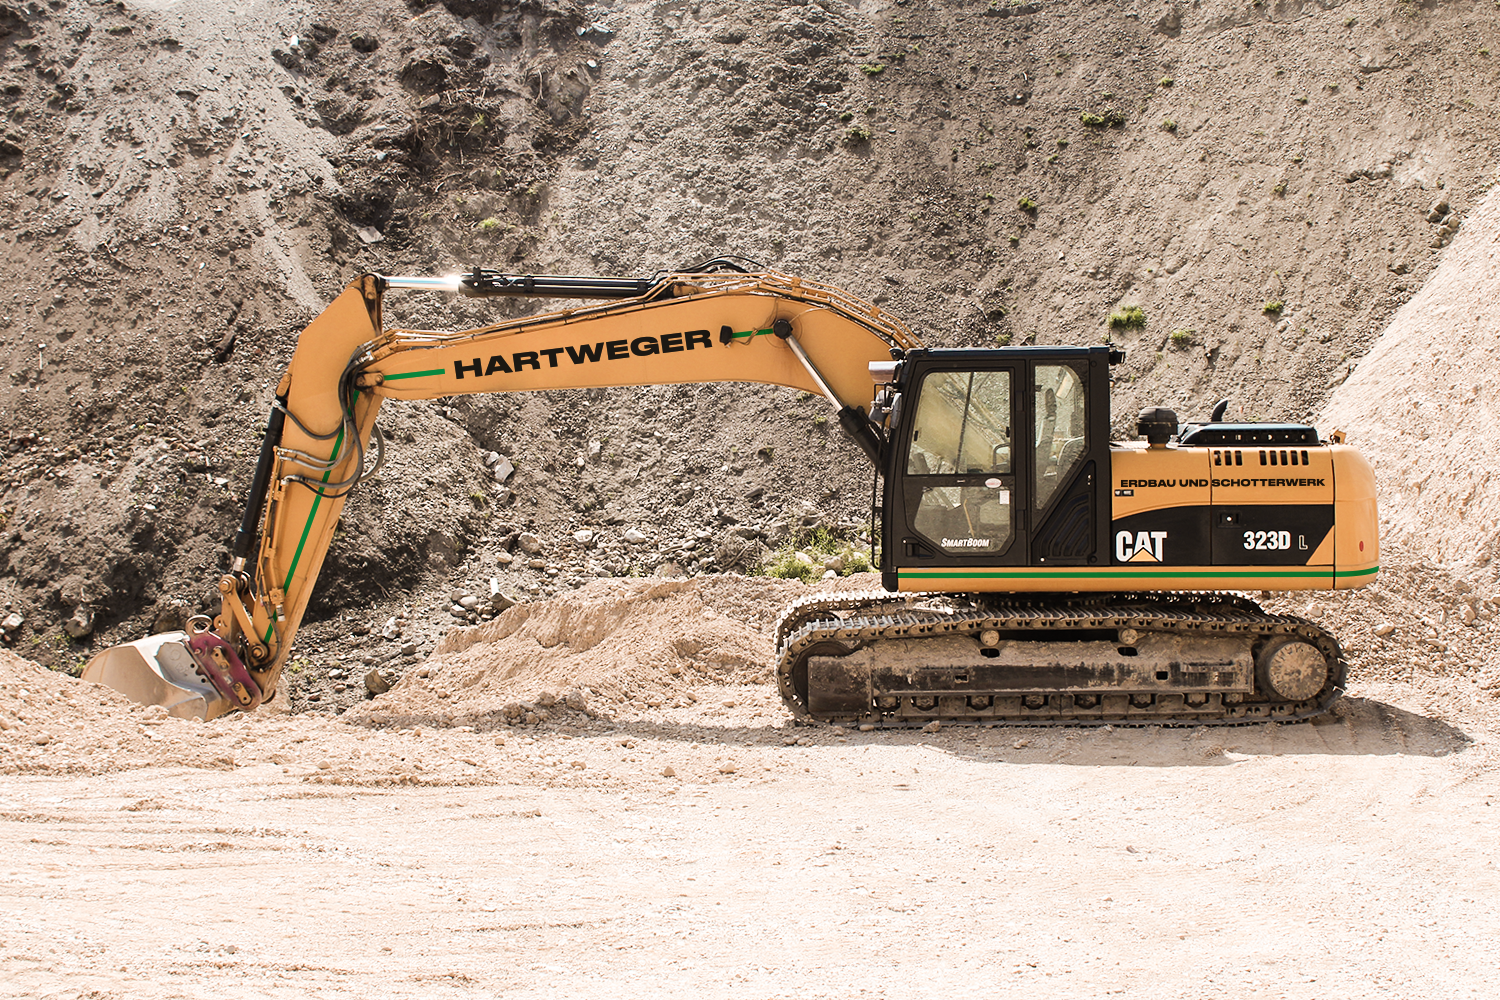 CAT 323 DL Kettenbagger—25 to